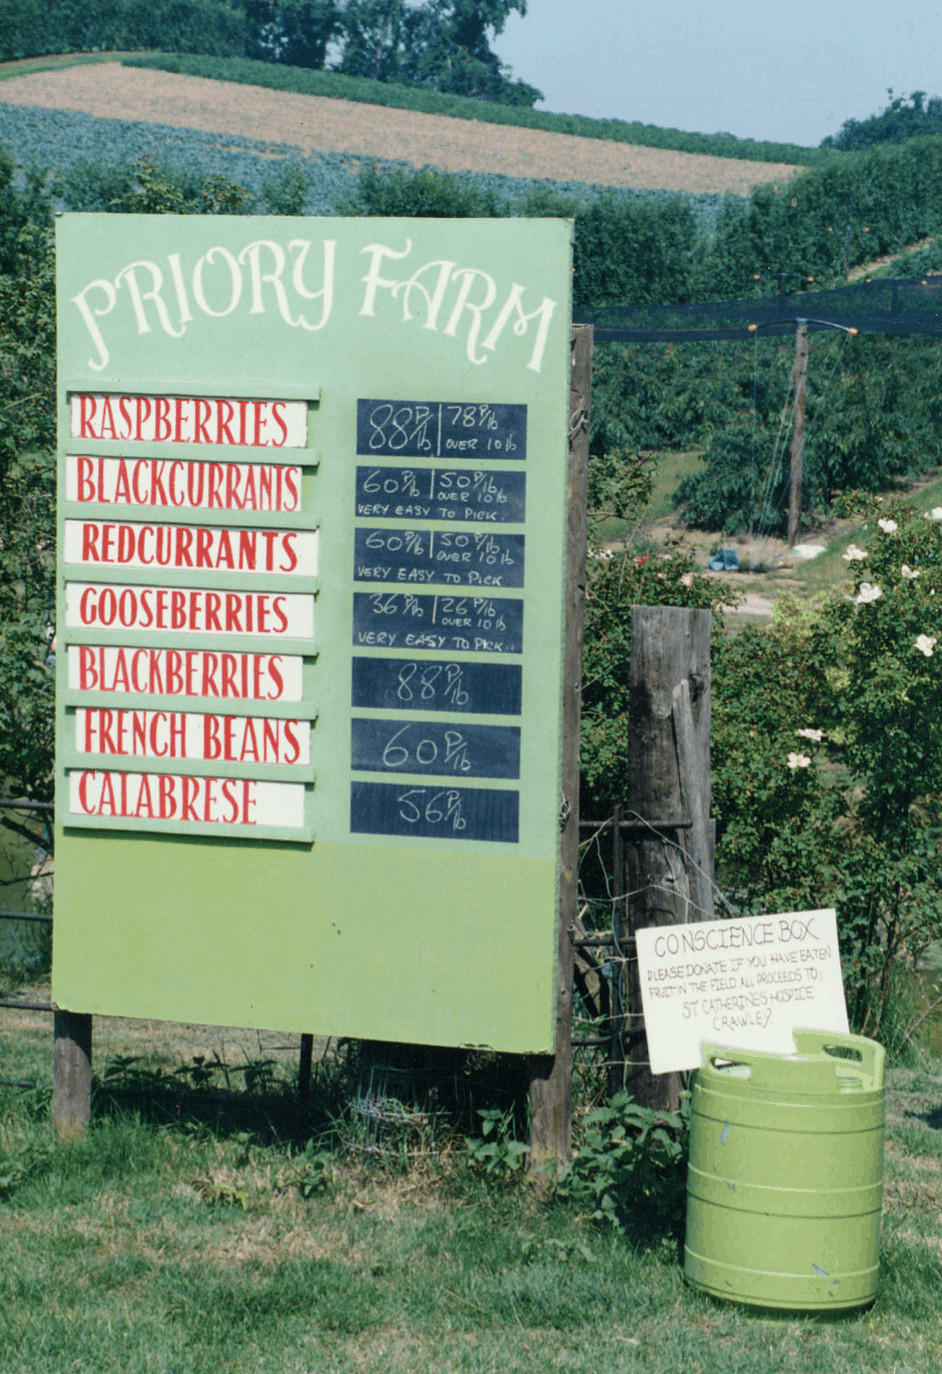 Just a few of the crops we used to grow here at Priory Farm.